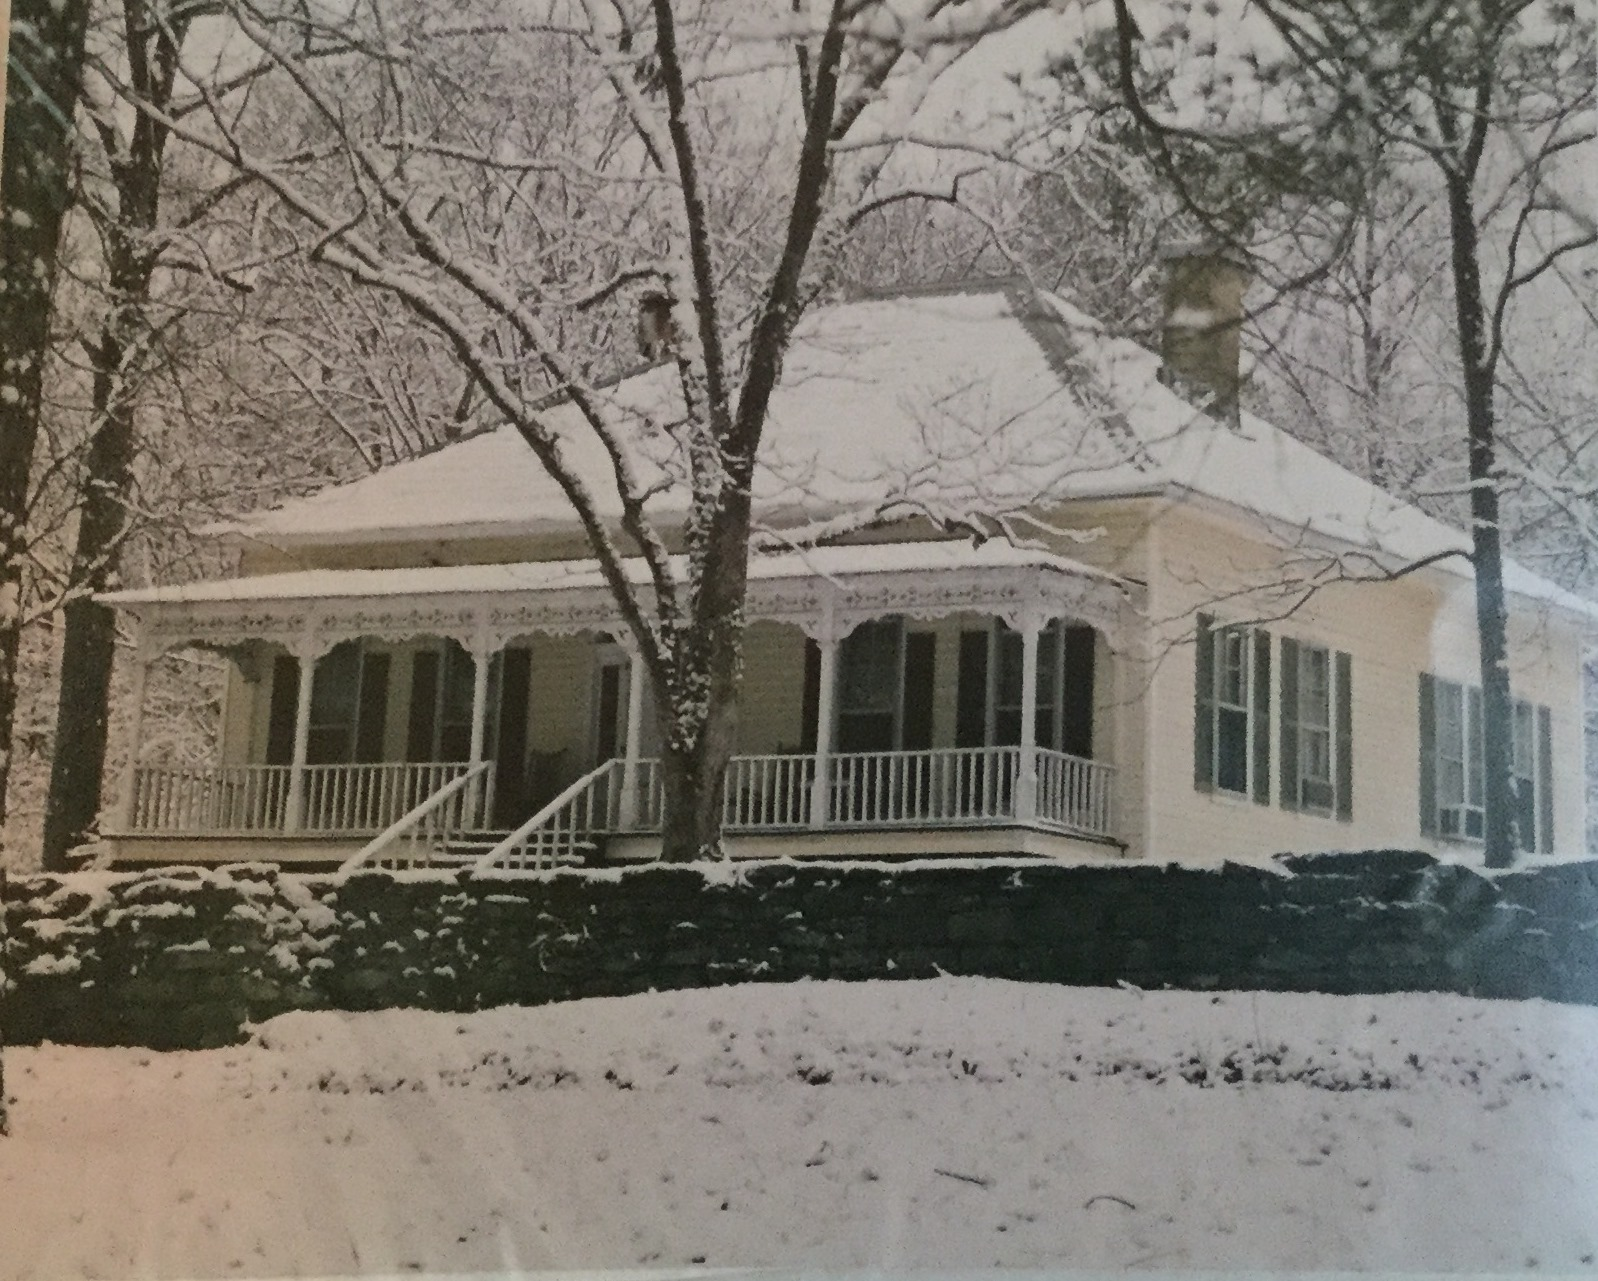 Cowden home, which stands today on the old Byler Road (Old Highway 43)